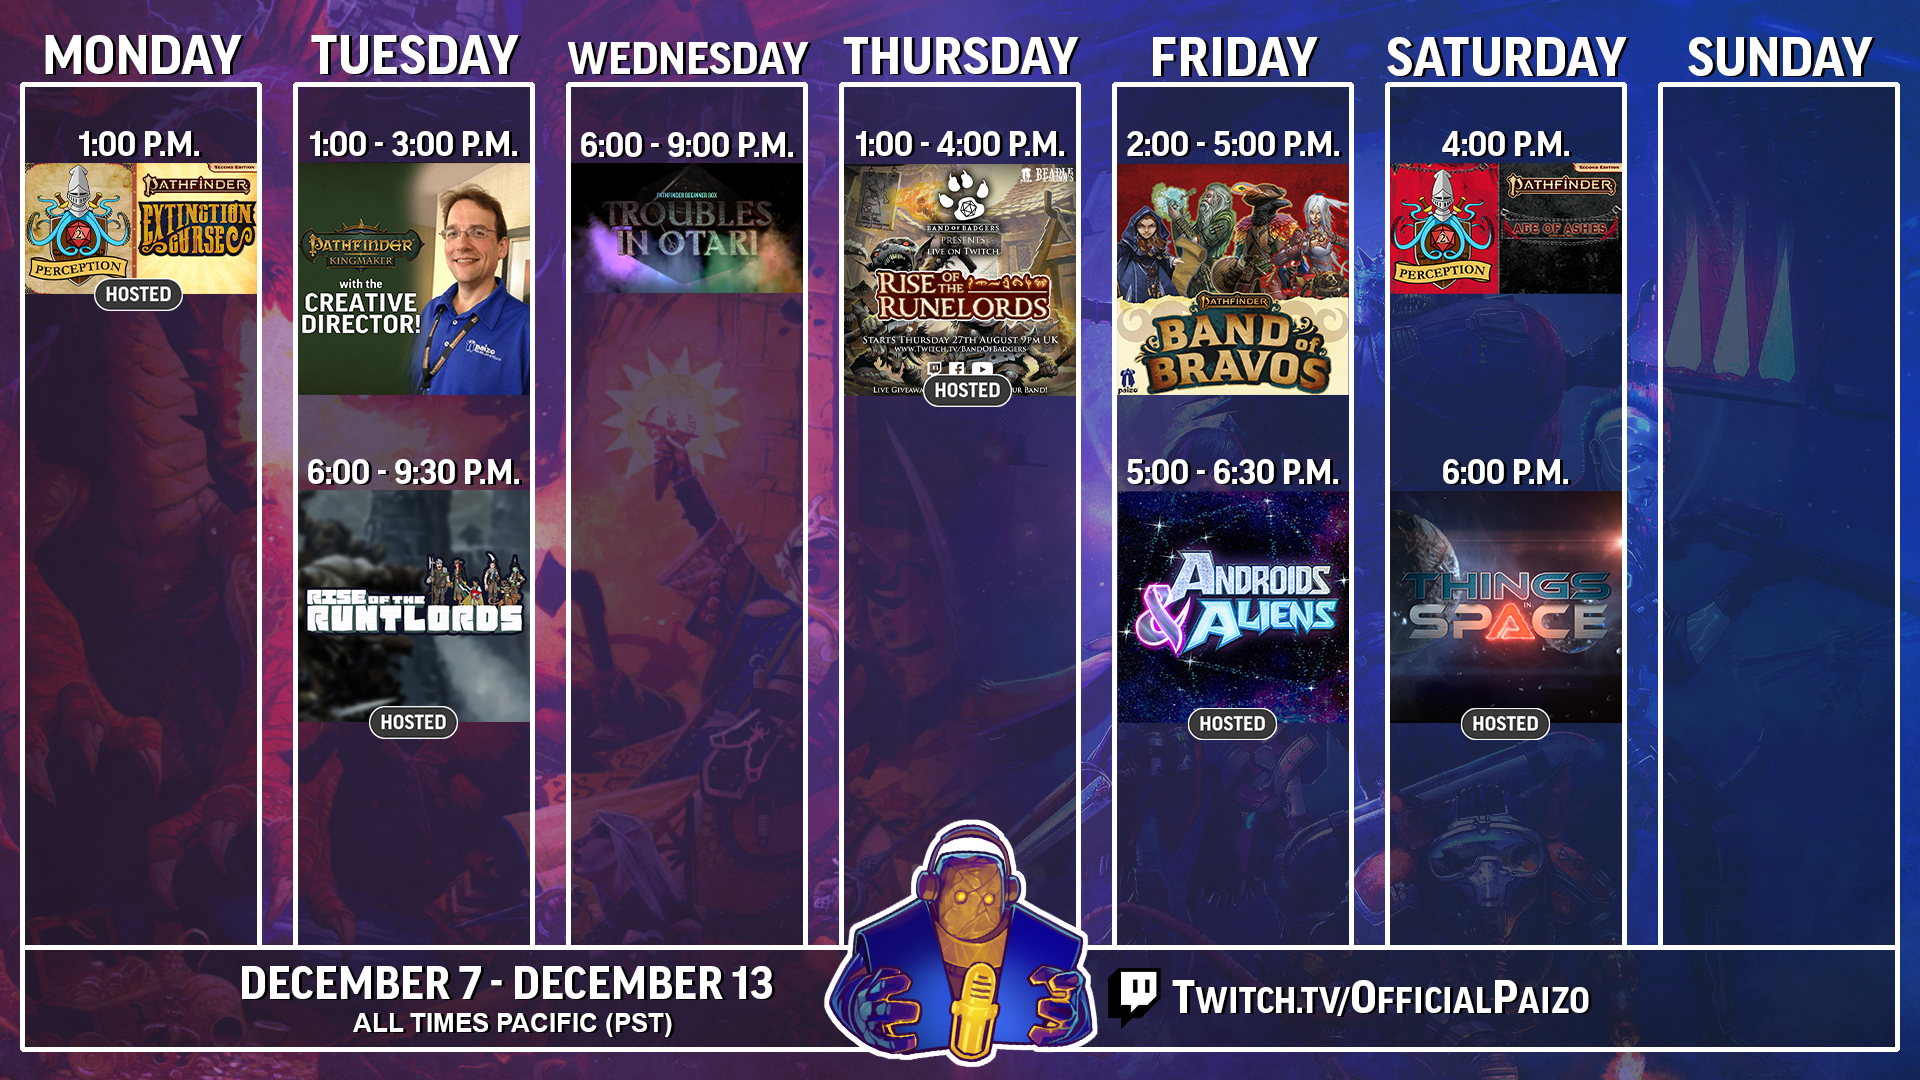 Official Paizo twitch streaming schedule for December 7th to the 13th